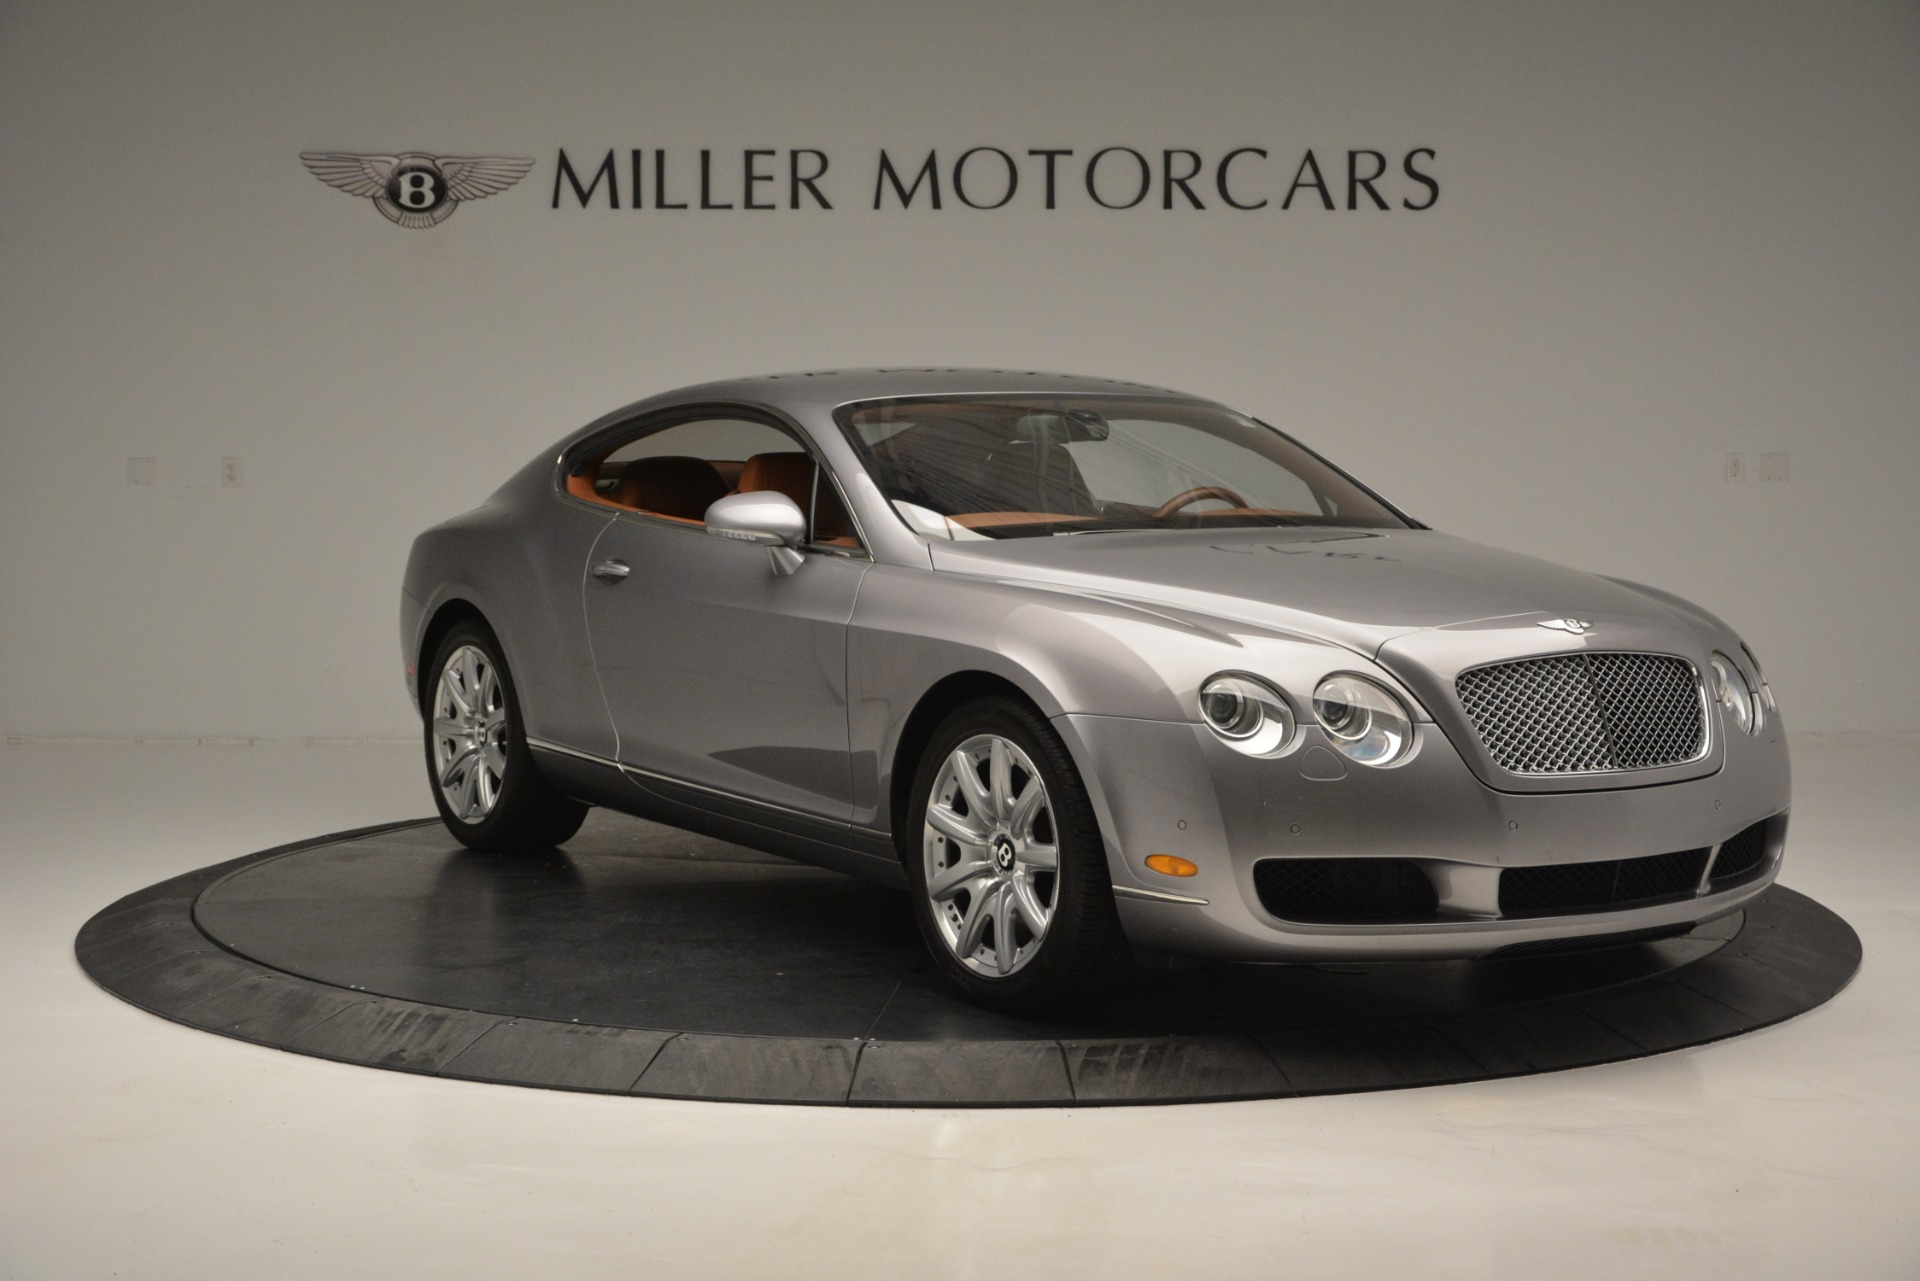 Used 2005 Bentley Continental GT GT Turbo For Sale In Greenwich, CT 2726_p11